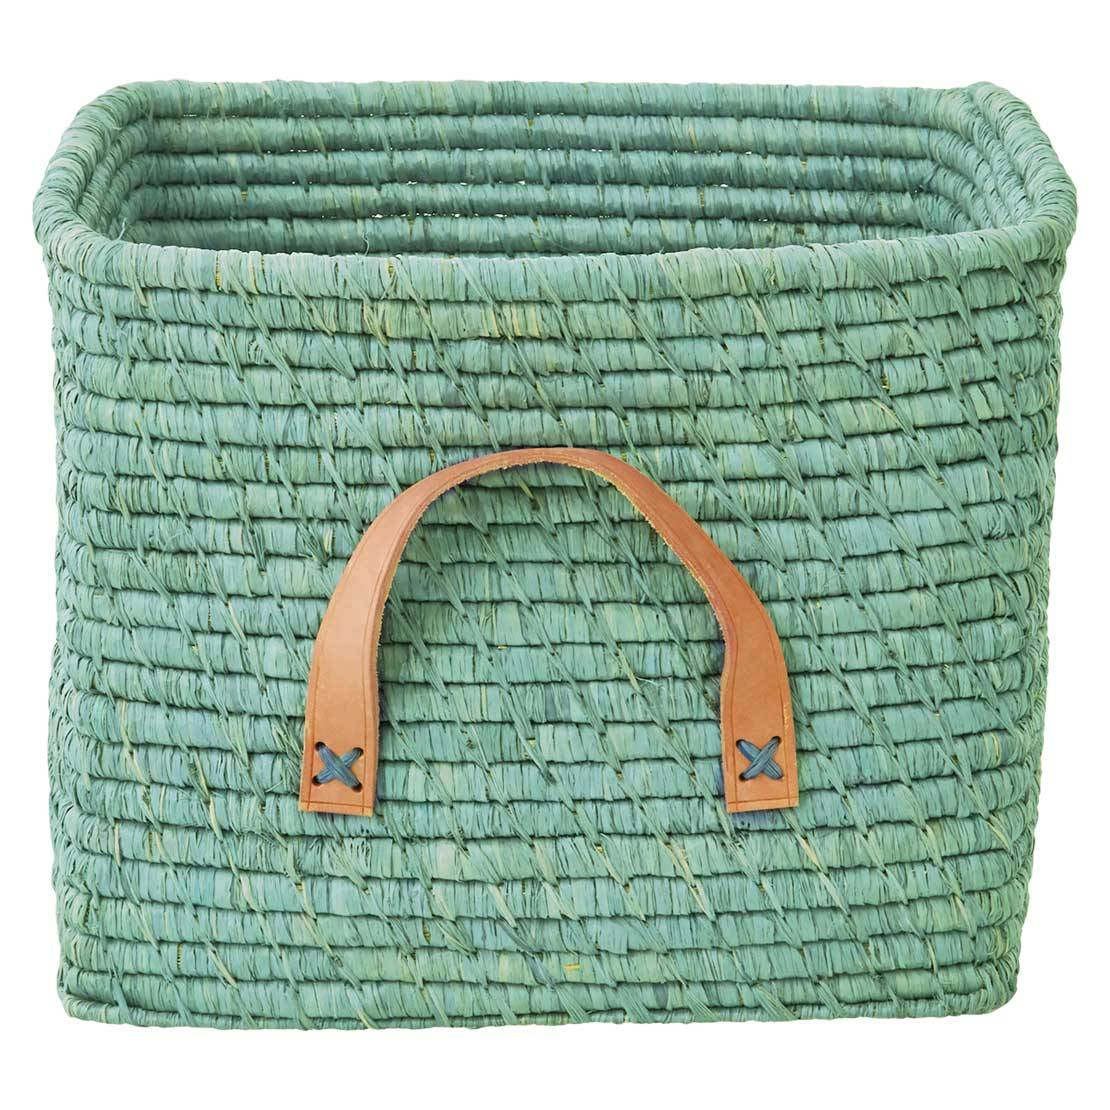 RICE Basket with Leather Handles, Mint